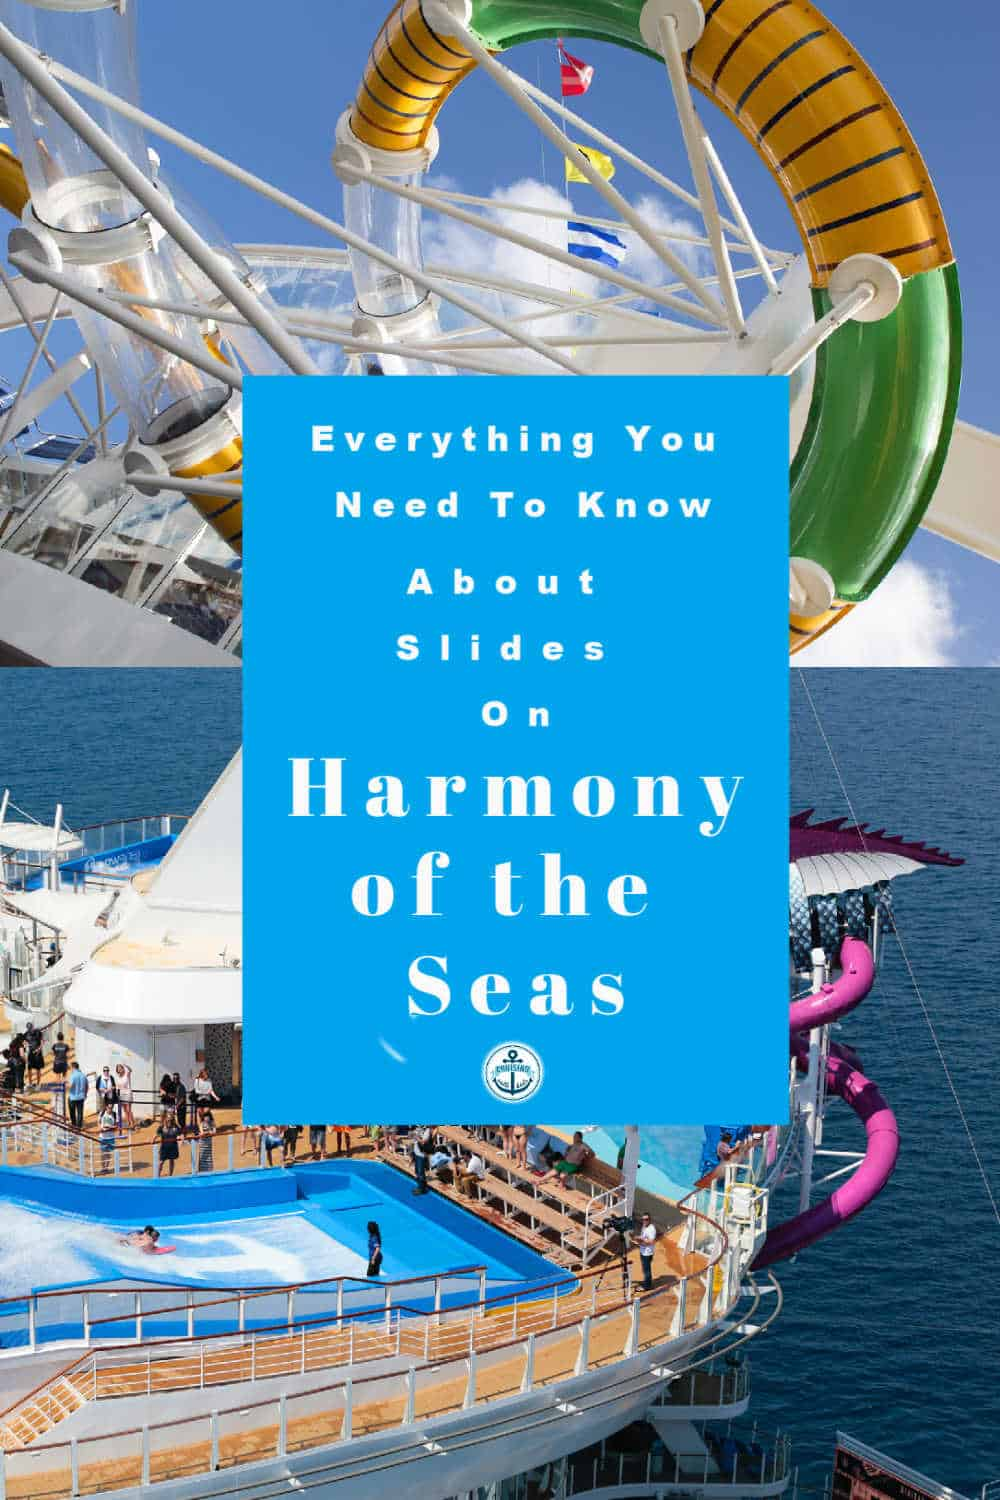 Everything you need to know about slides on Harmony of the seas including weight and height restrictions